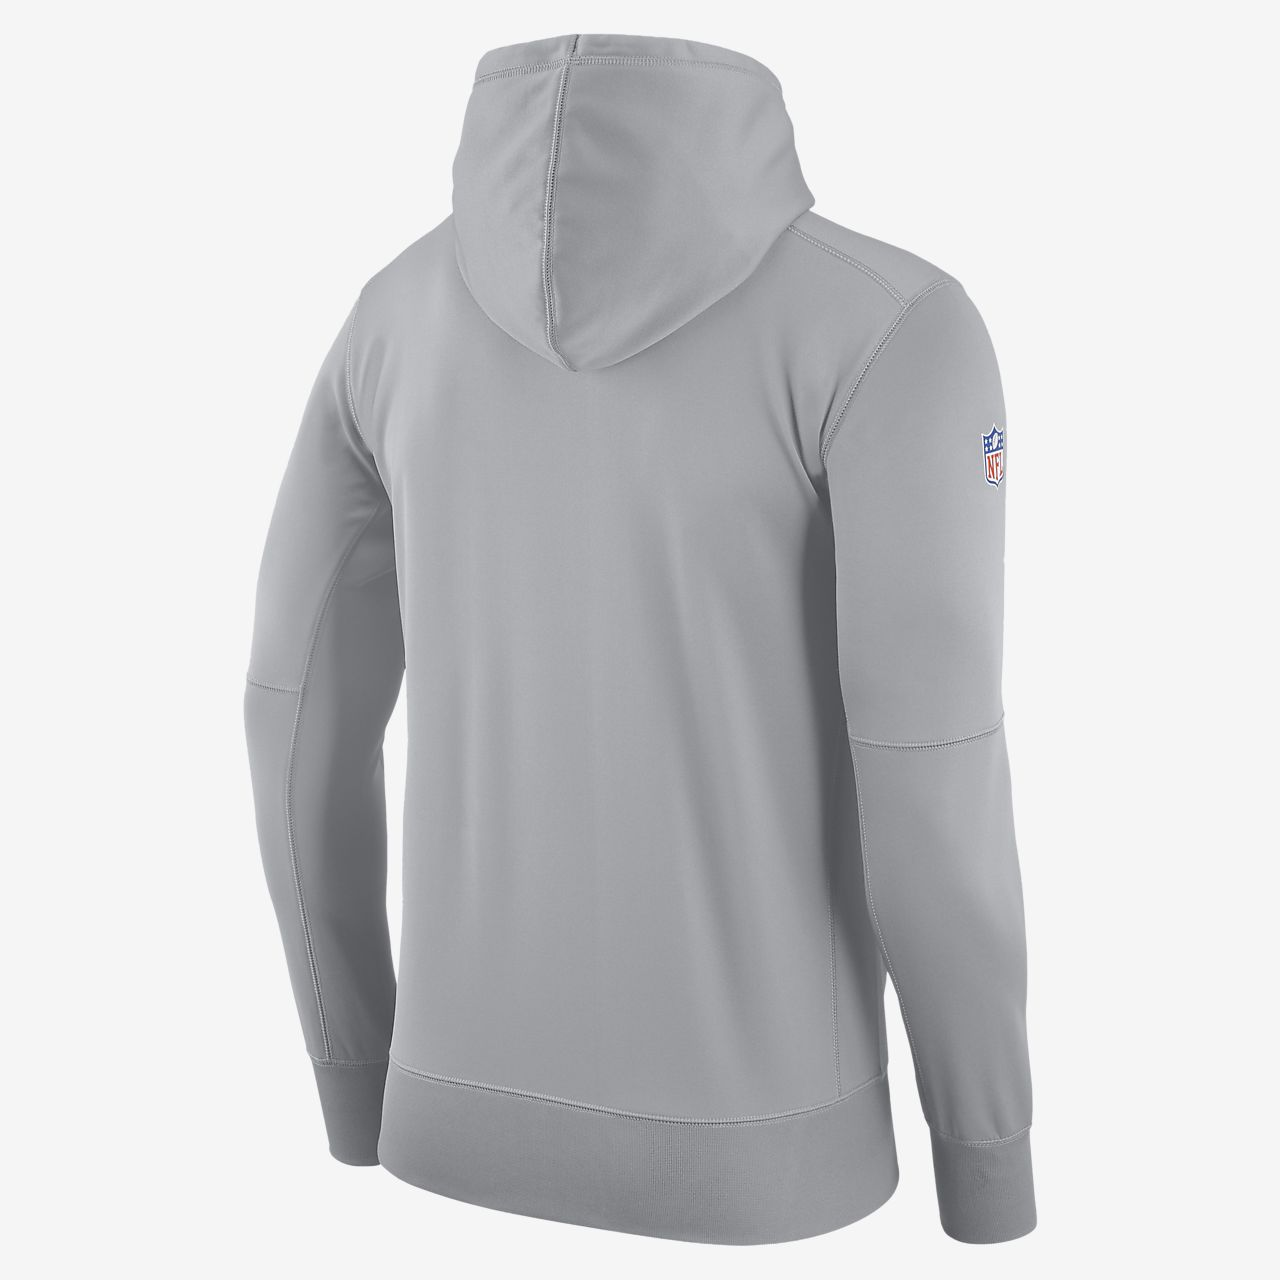 info for 4d0e6 2f9f3 Nike Dri-FIT Therma (NFL Patriots) Men's Pullover Hoodie